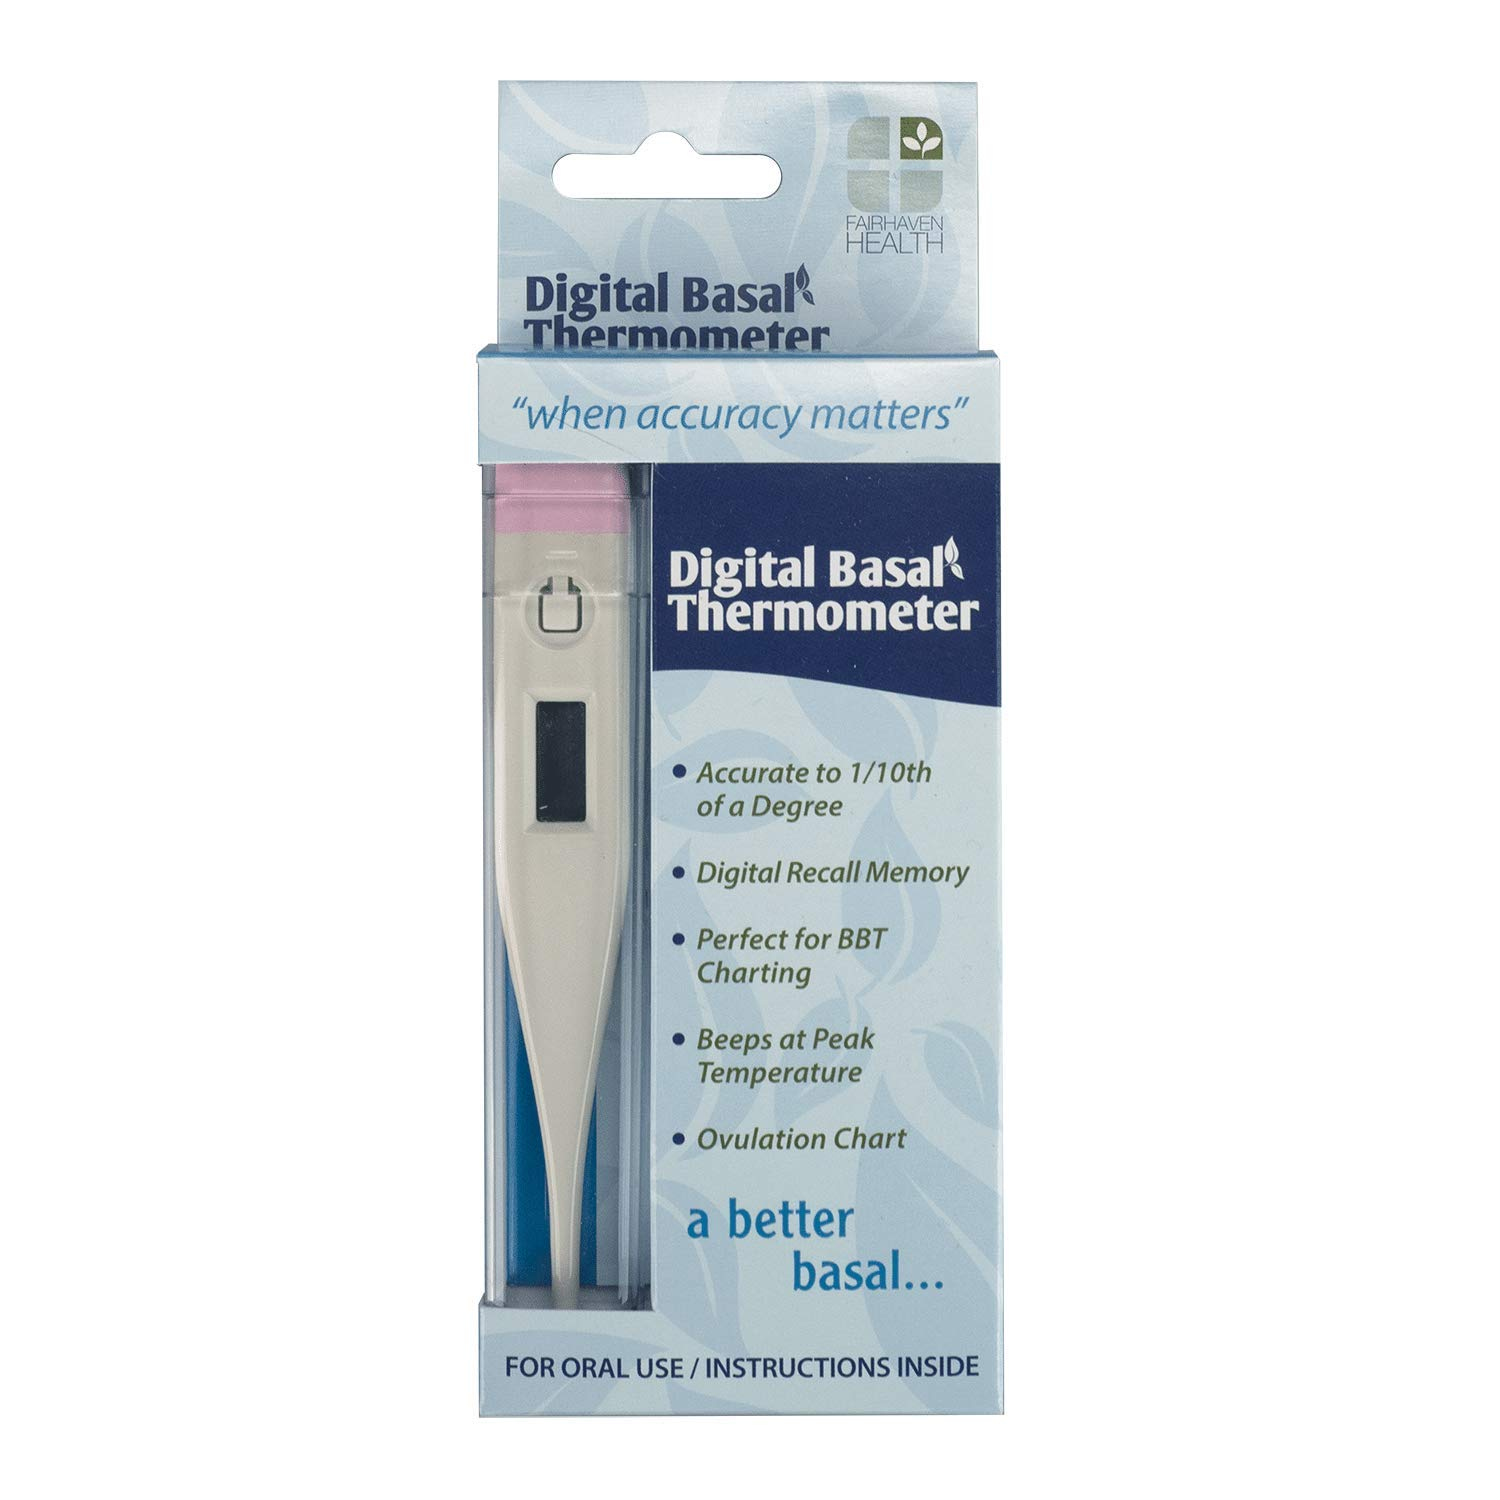 Digital Basal Thermometer for Fertility Charting, Displays to 1/100th Degree